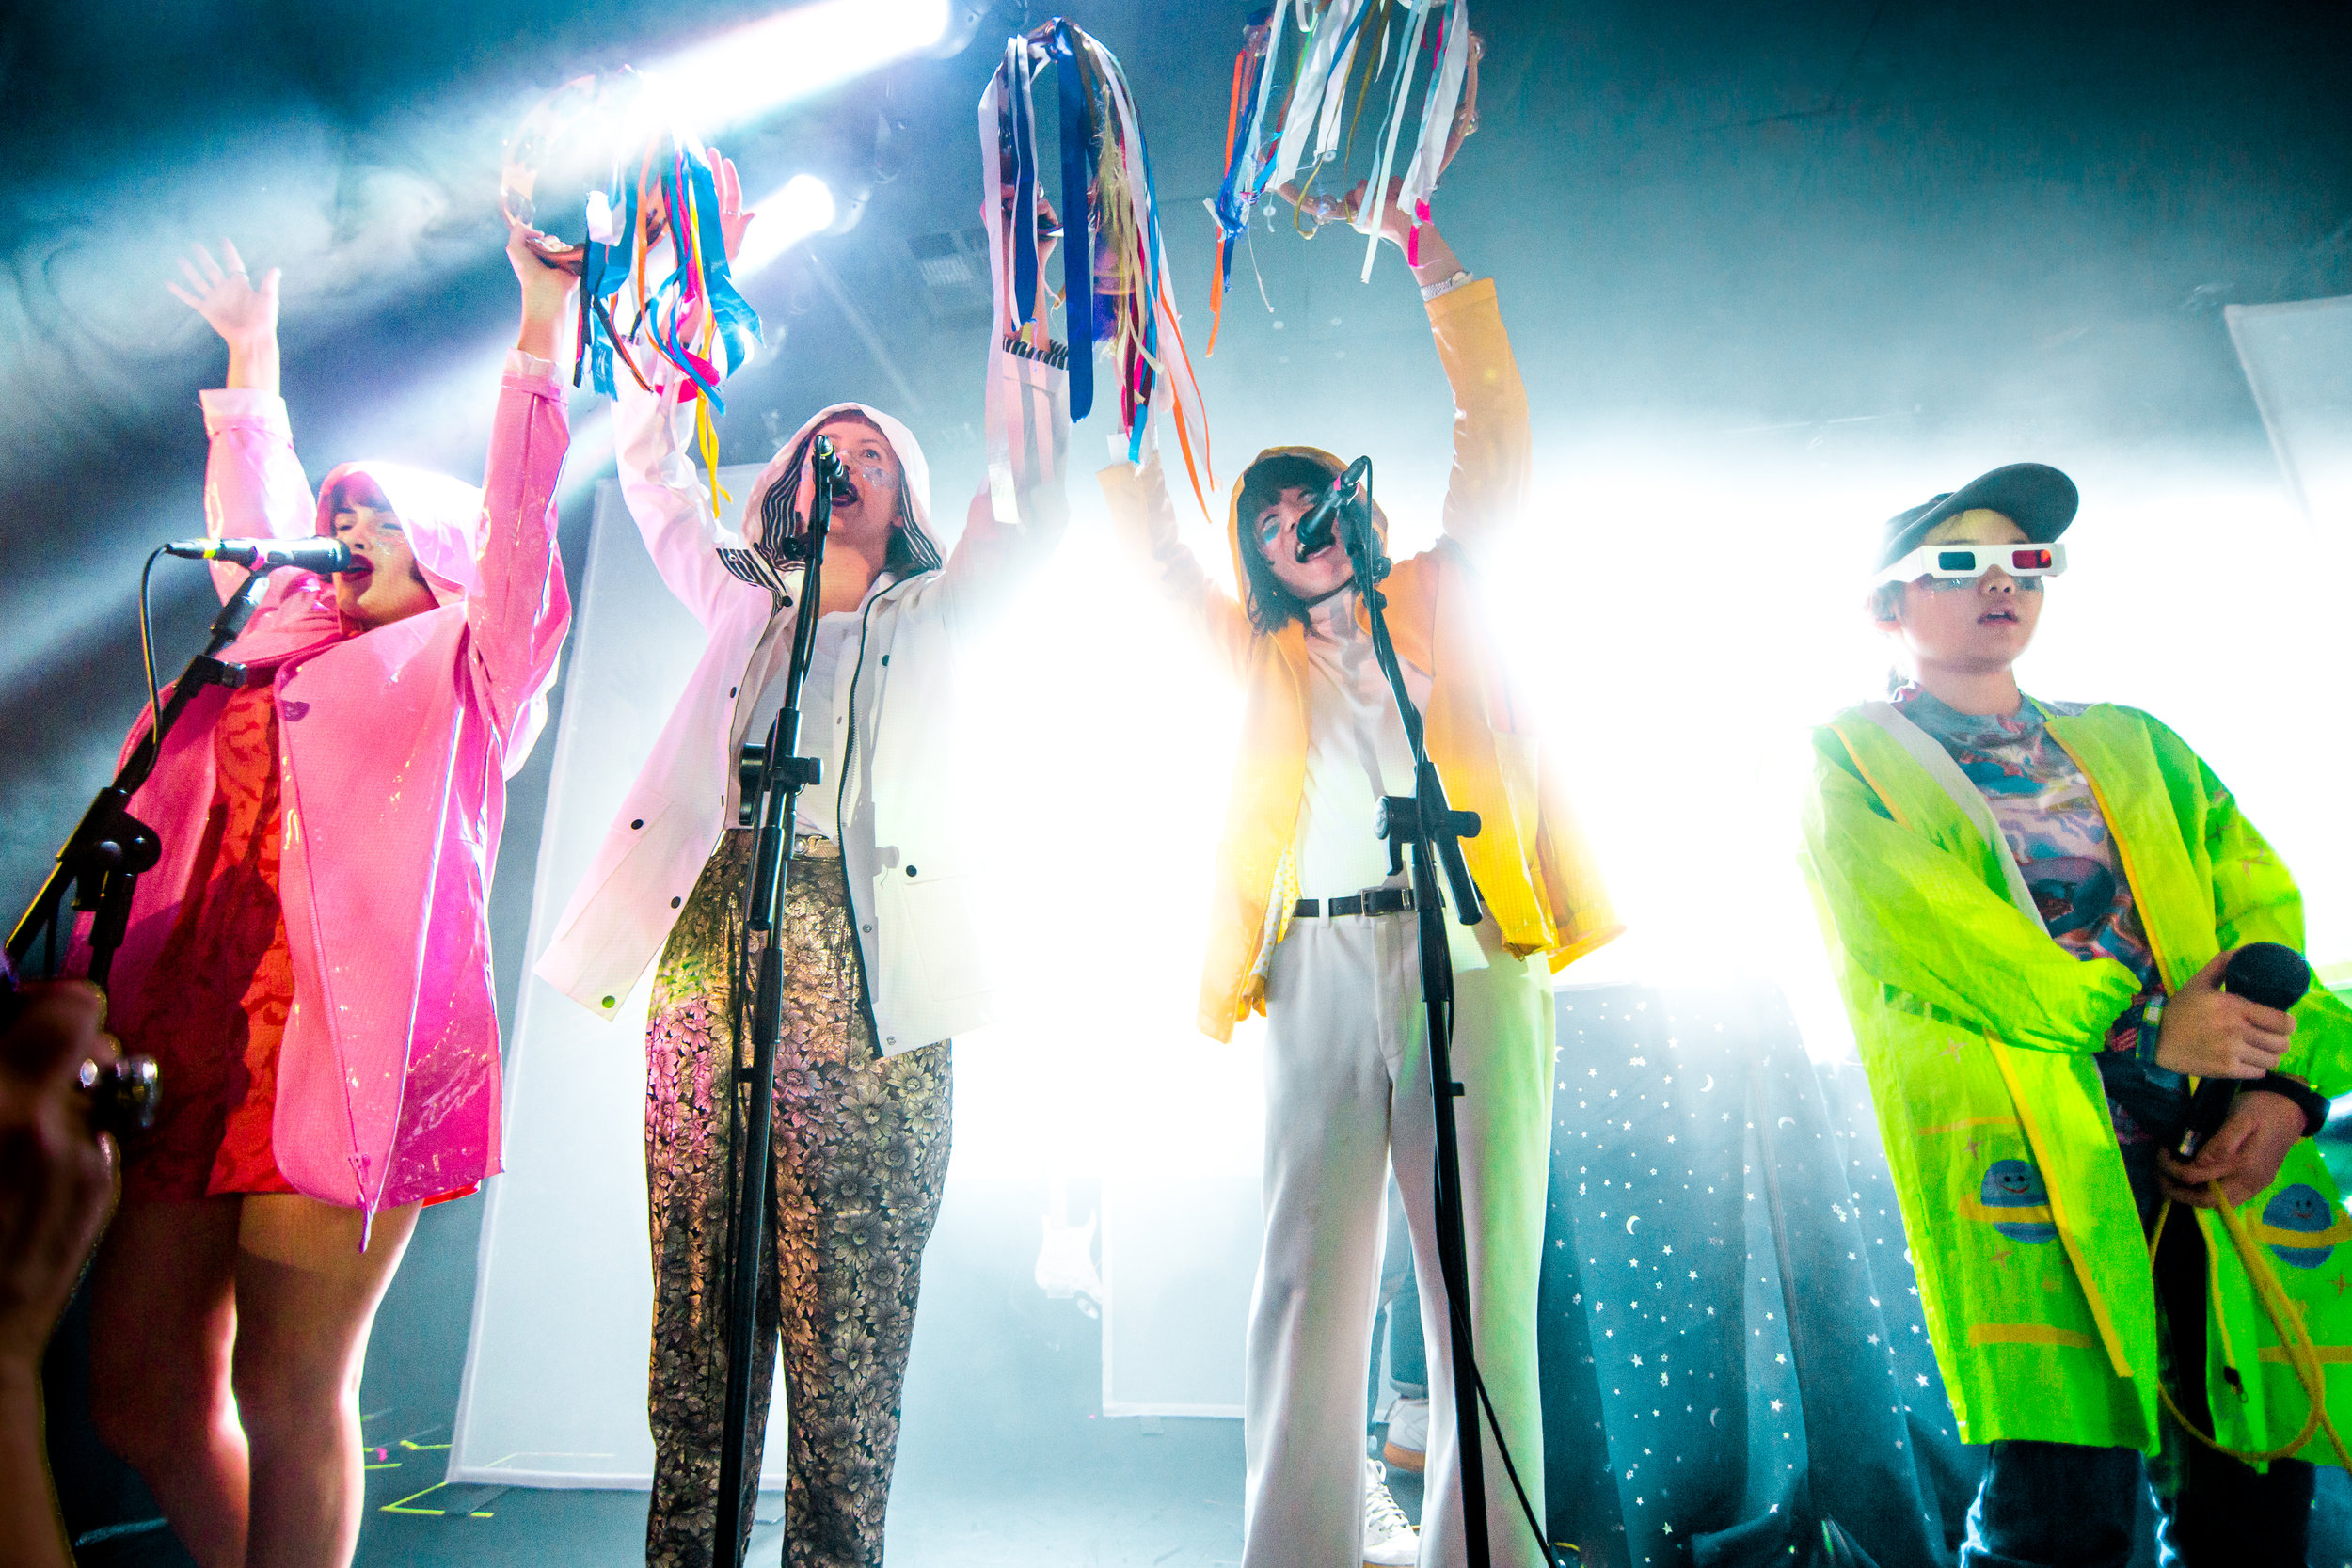 kirby-gladstein-photography-superorganism-concert-moroccan-lounge-los-angeles-5